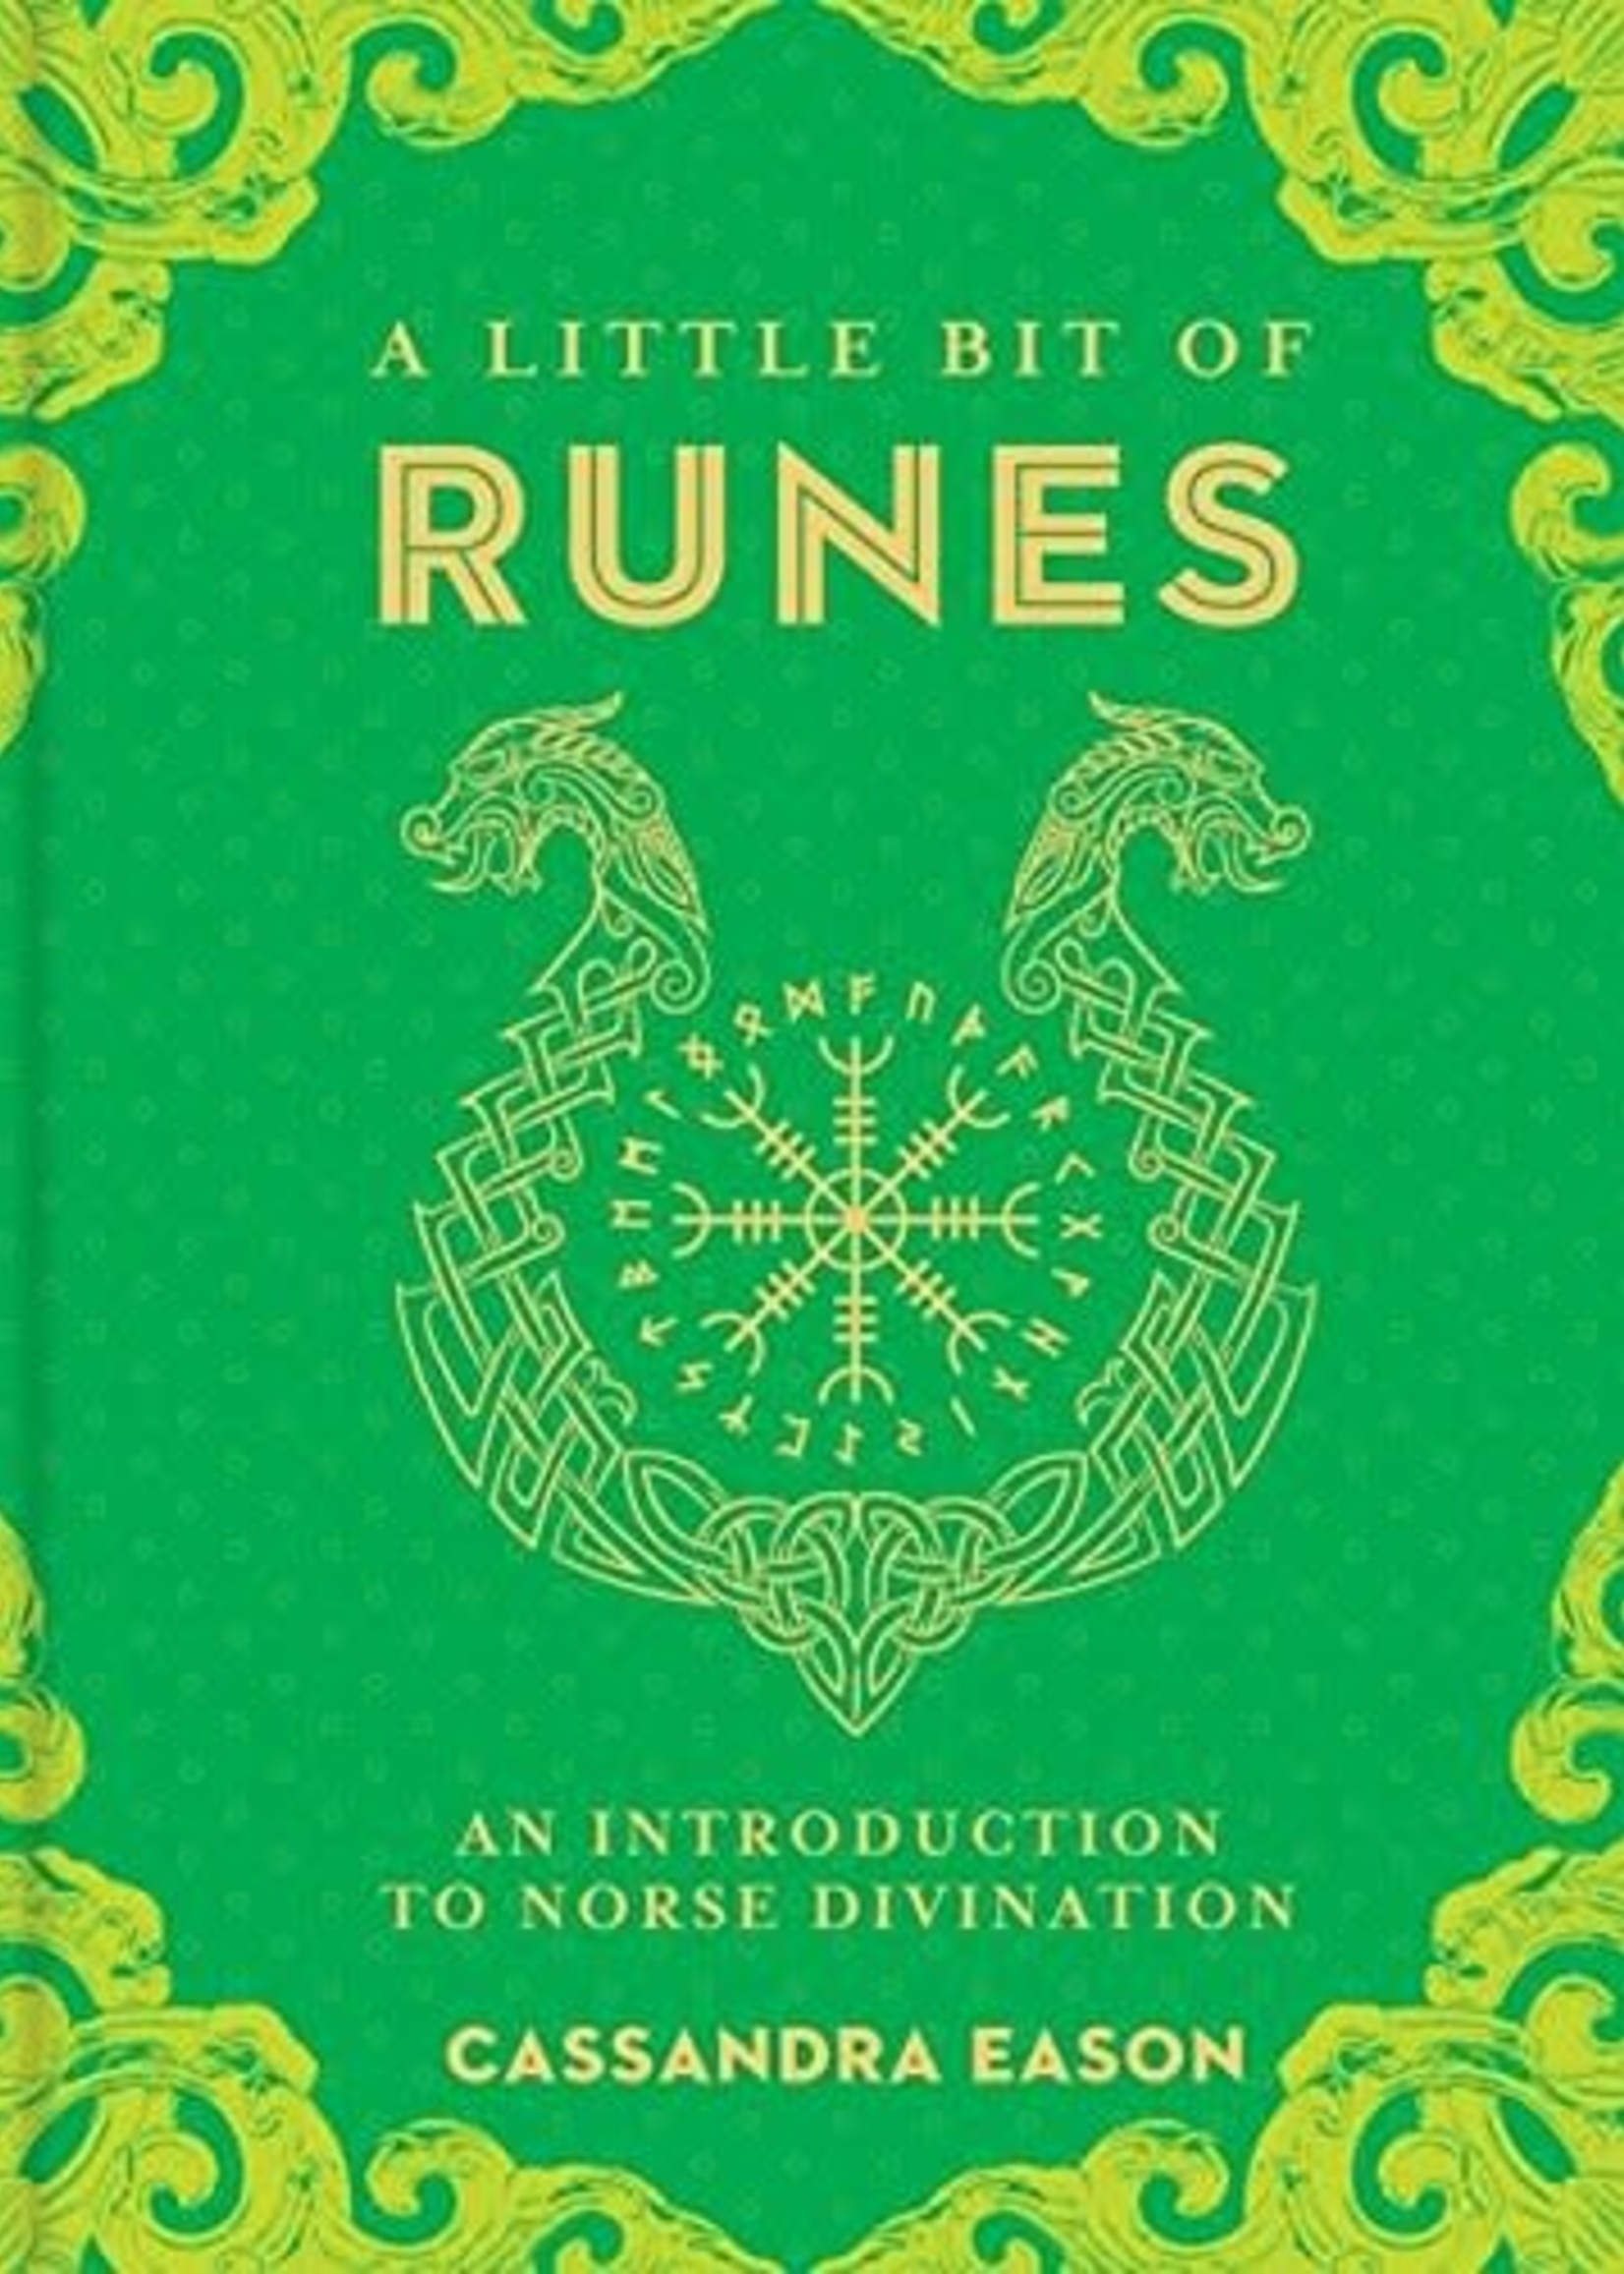 A Little Bit of Runes- An Introduction to Norse Divination